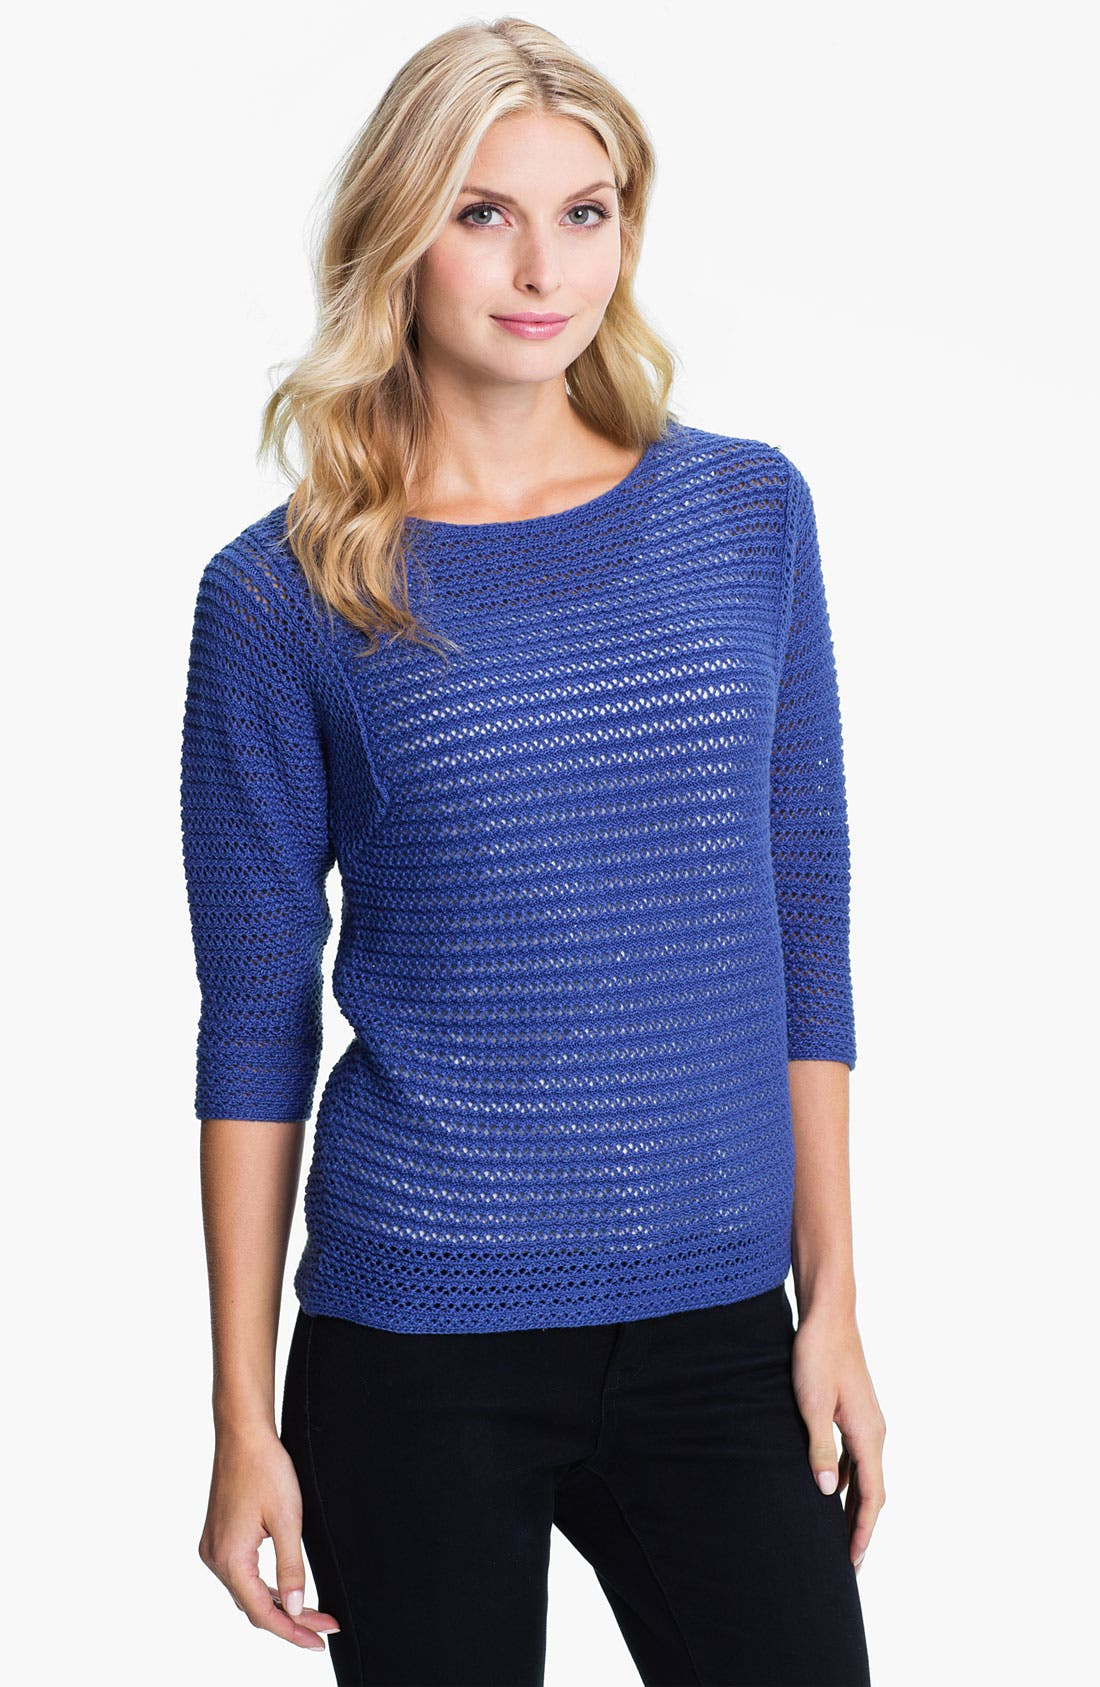 Alternate Image 1 Selected - Holistia 'Eco' Open Stitch Sweater